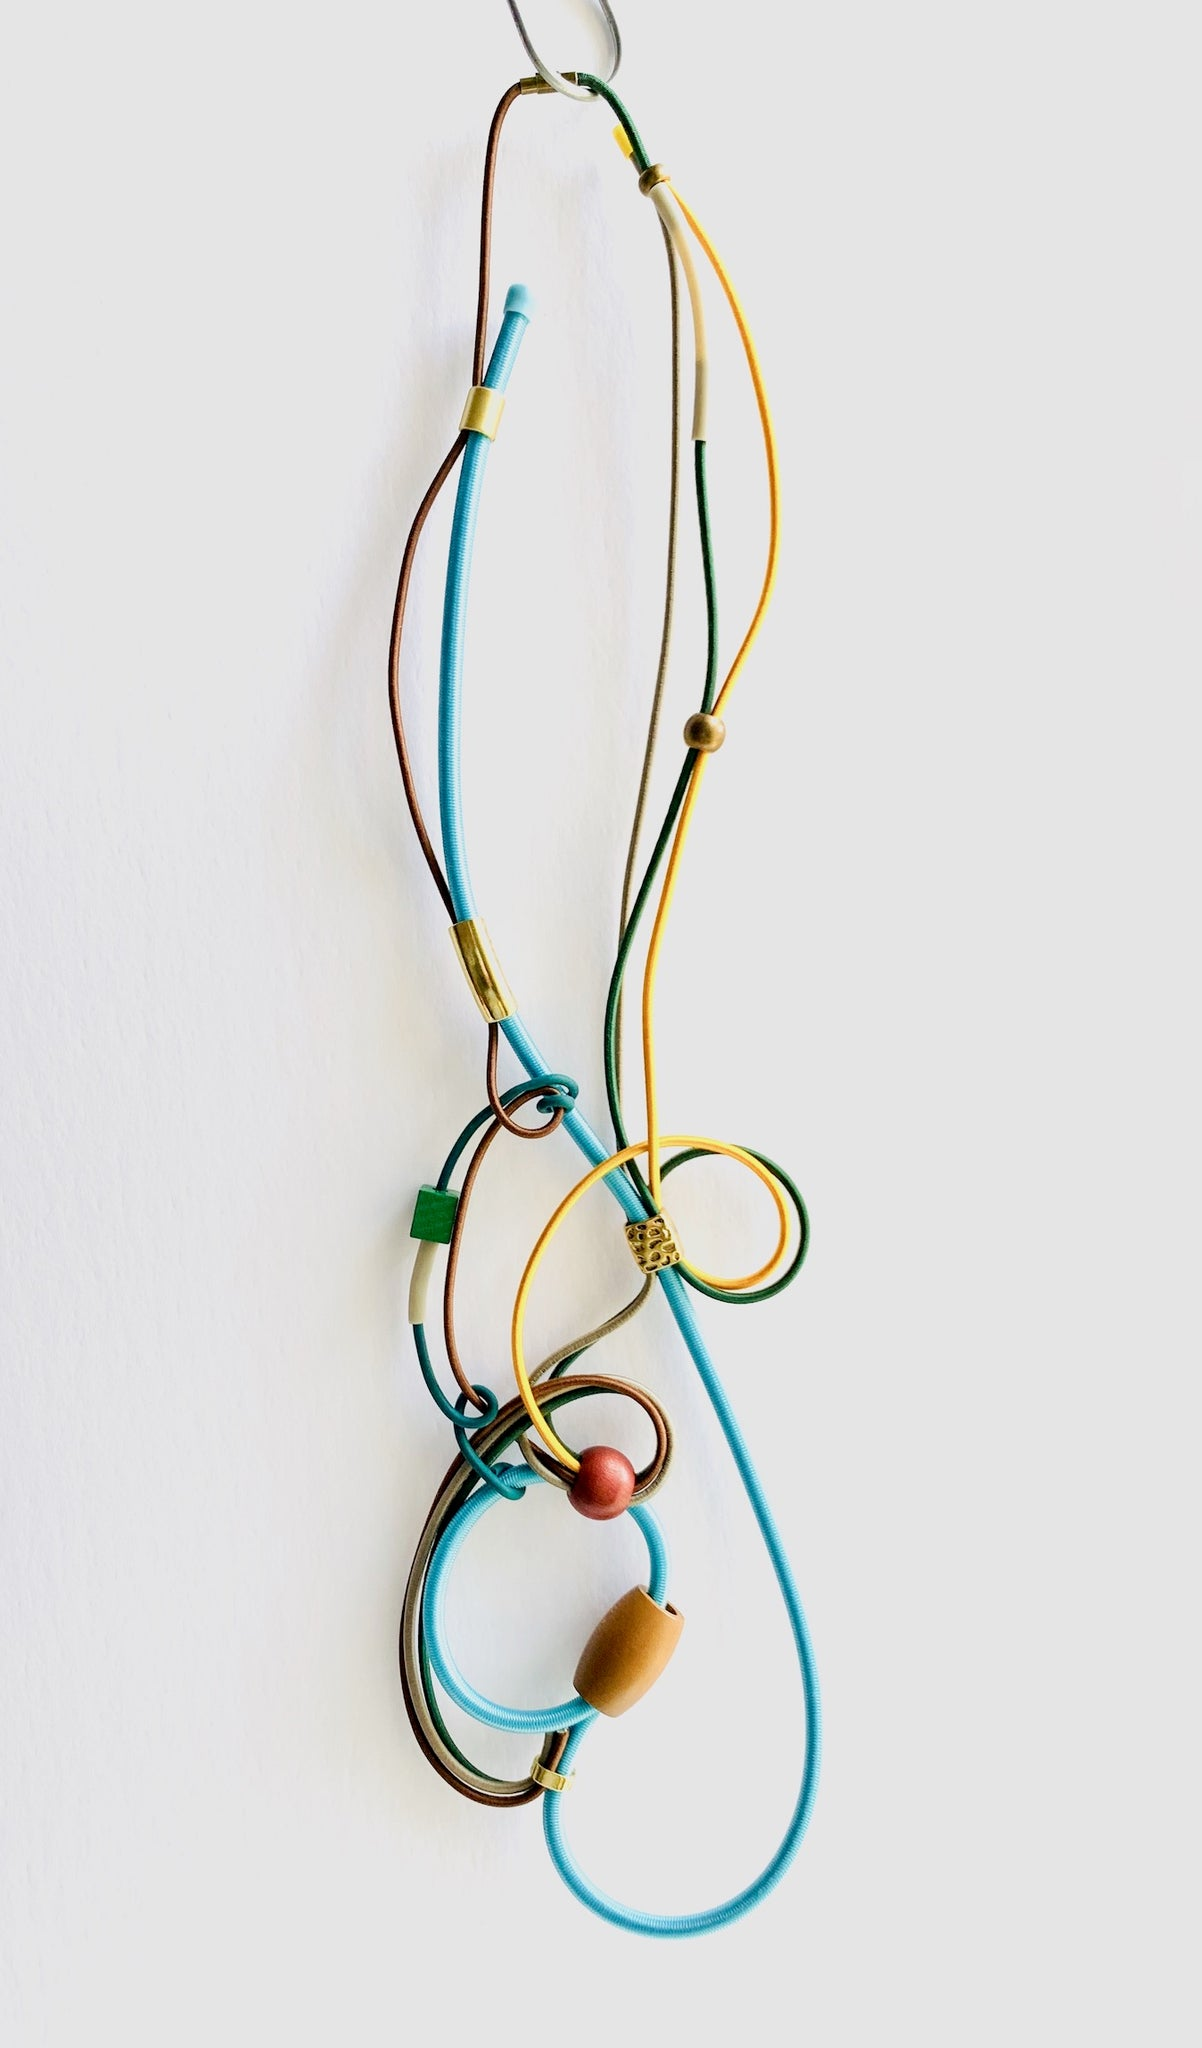 Connecting Necklace in Light Blue, Gold and Brown